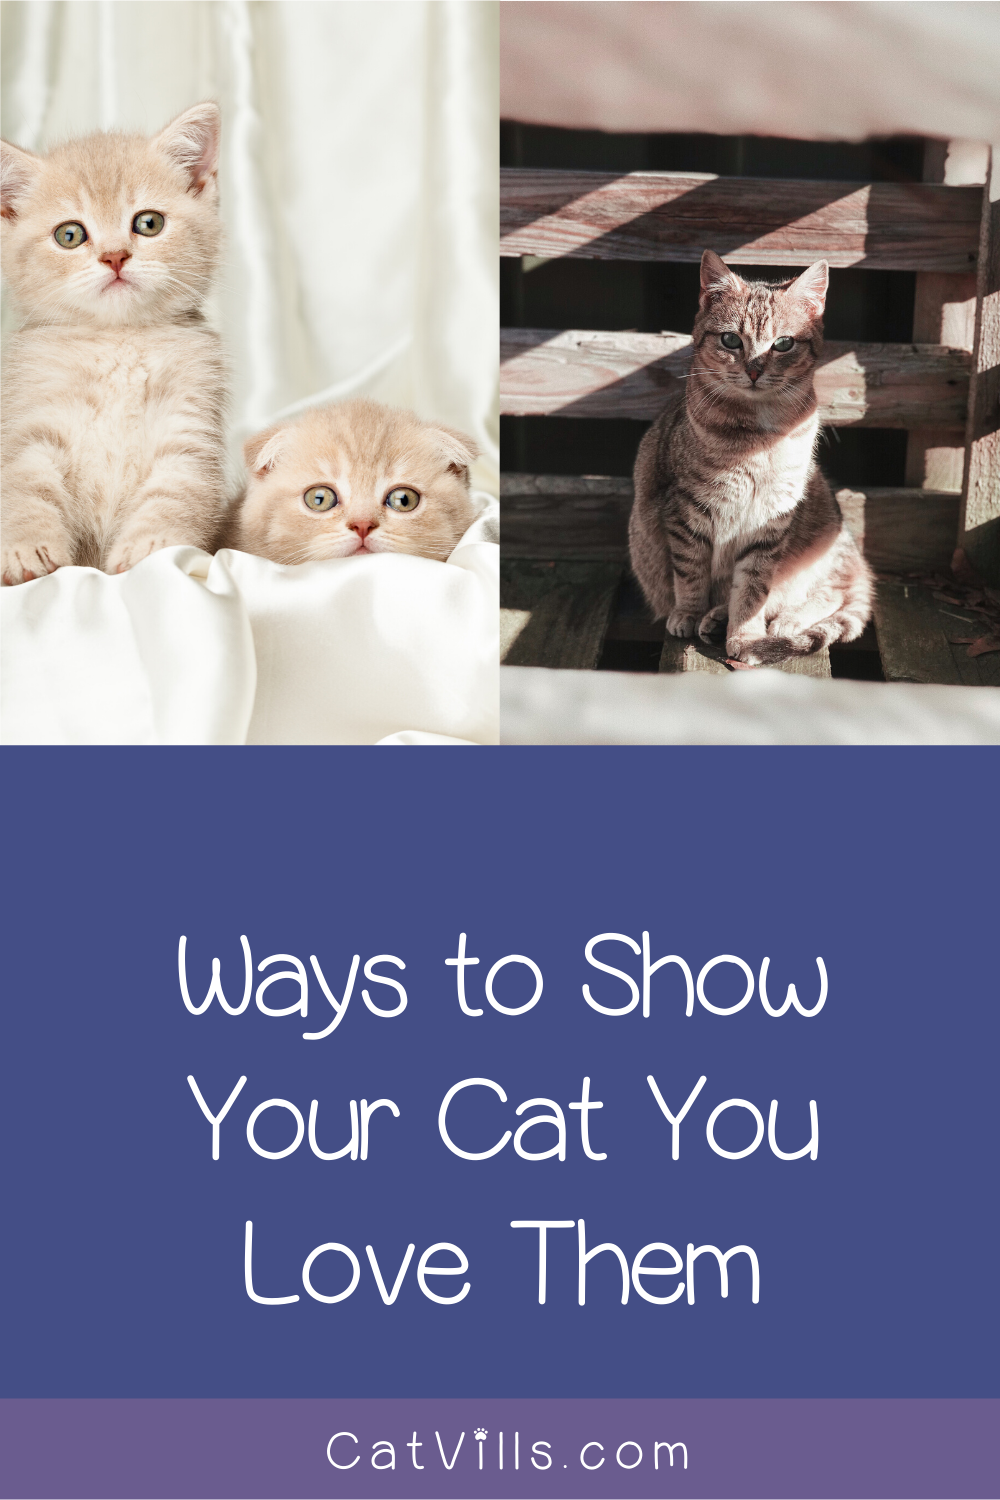 9 Ways to Show Your Cat You Love Them CatVills in 2020